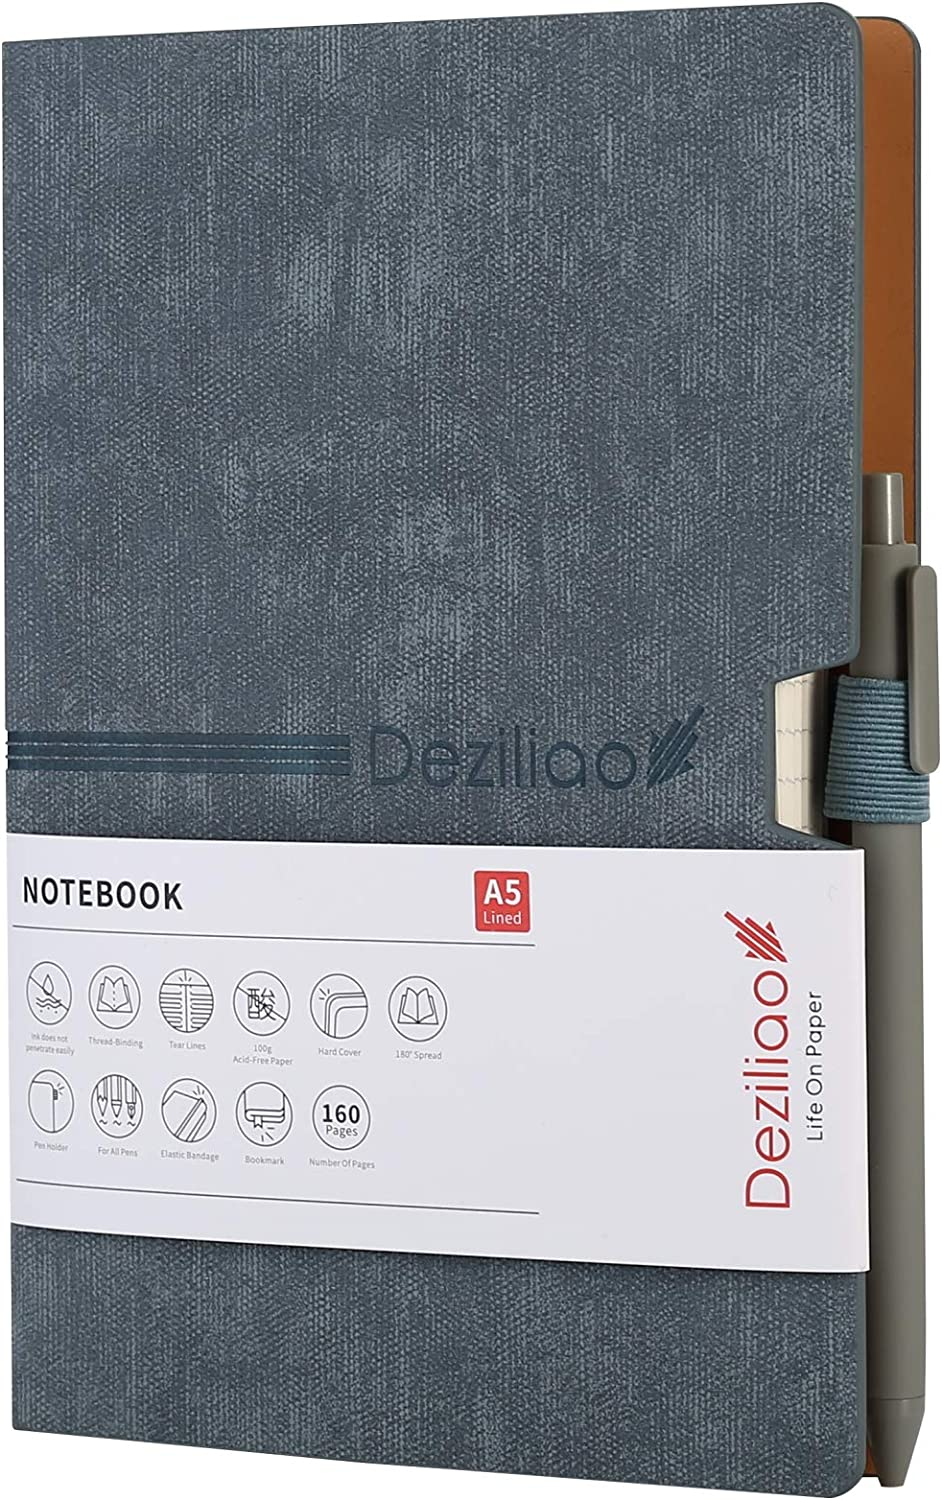 It is Minneapolis Mall very popular Deziliao Lined Journal Notebooks with Hardcover Pen Notebo Loop